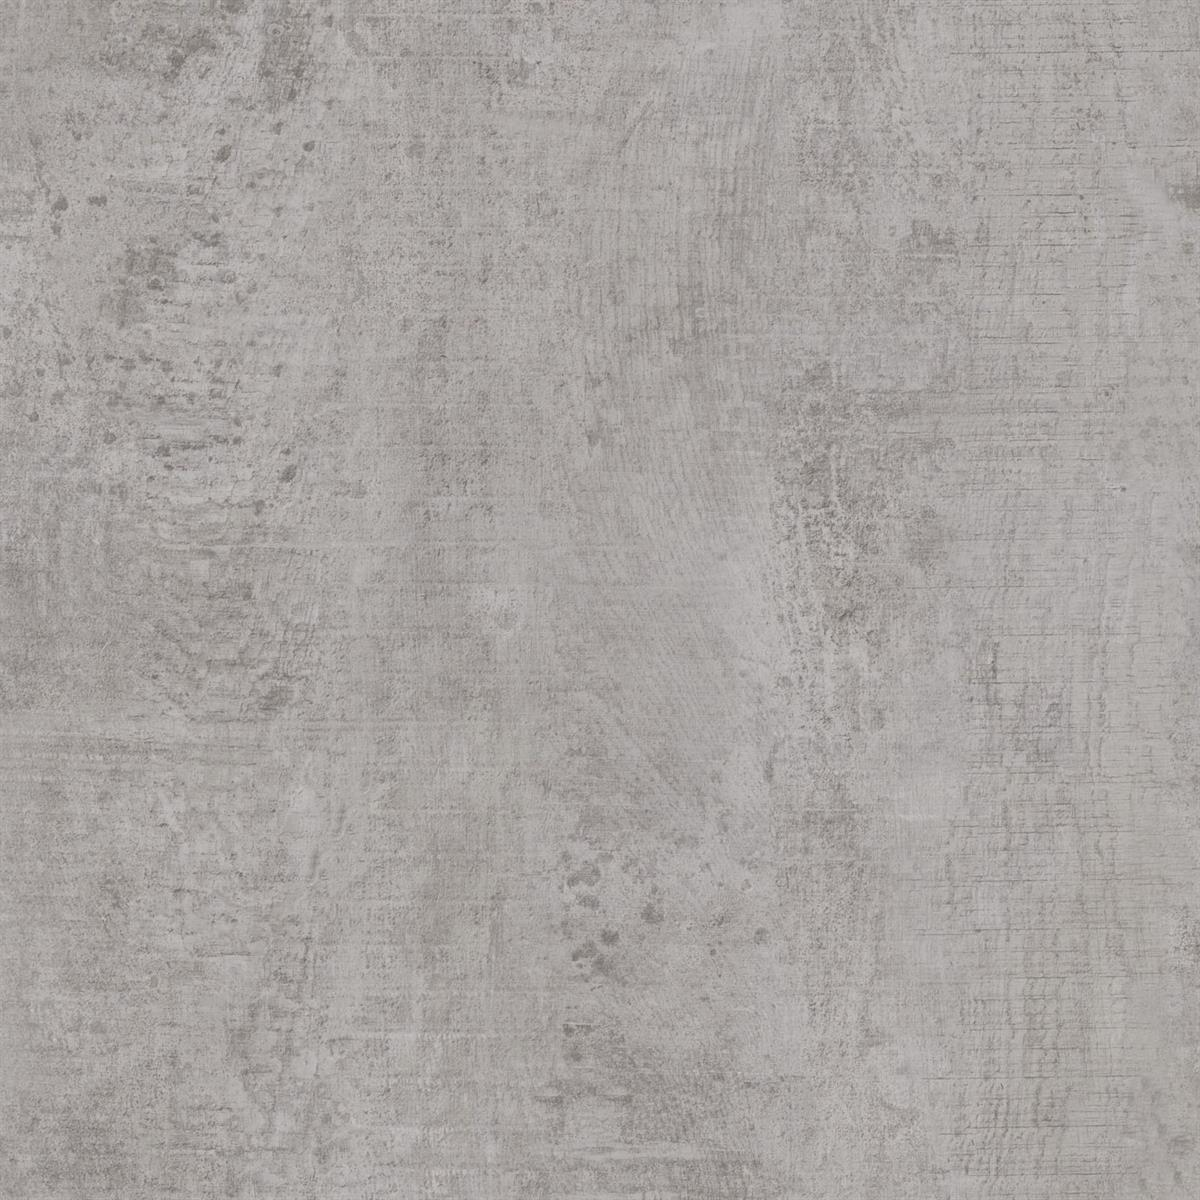 Synergii Classic - Woodstone Gris